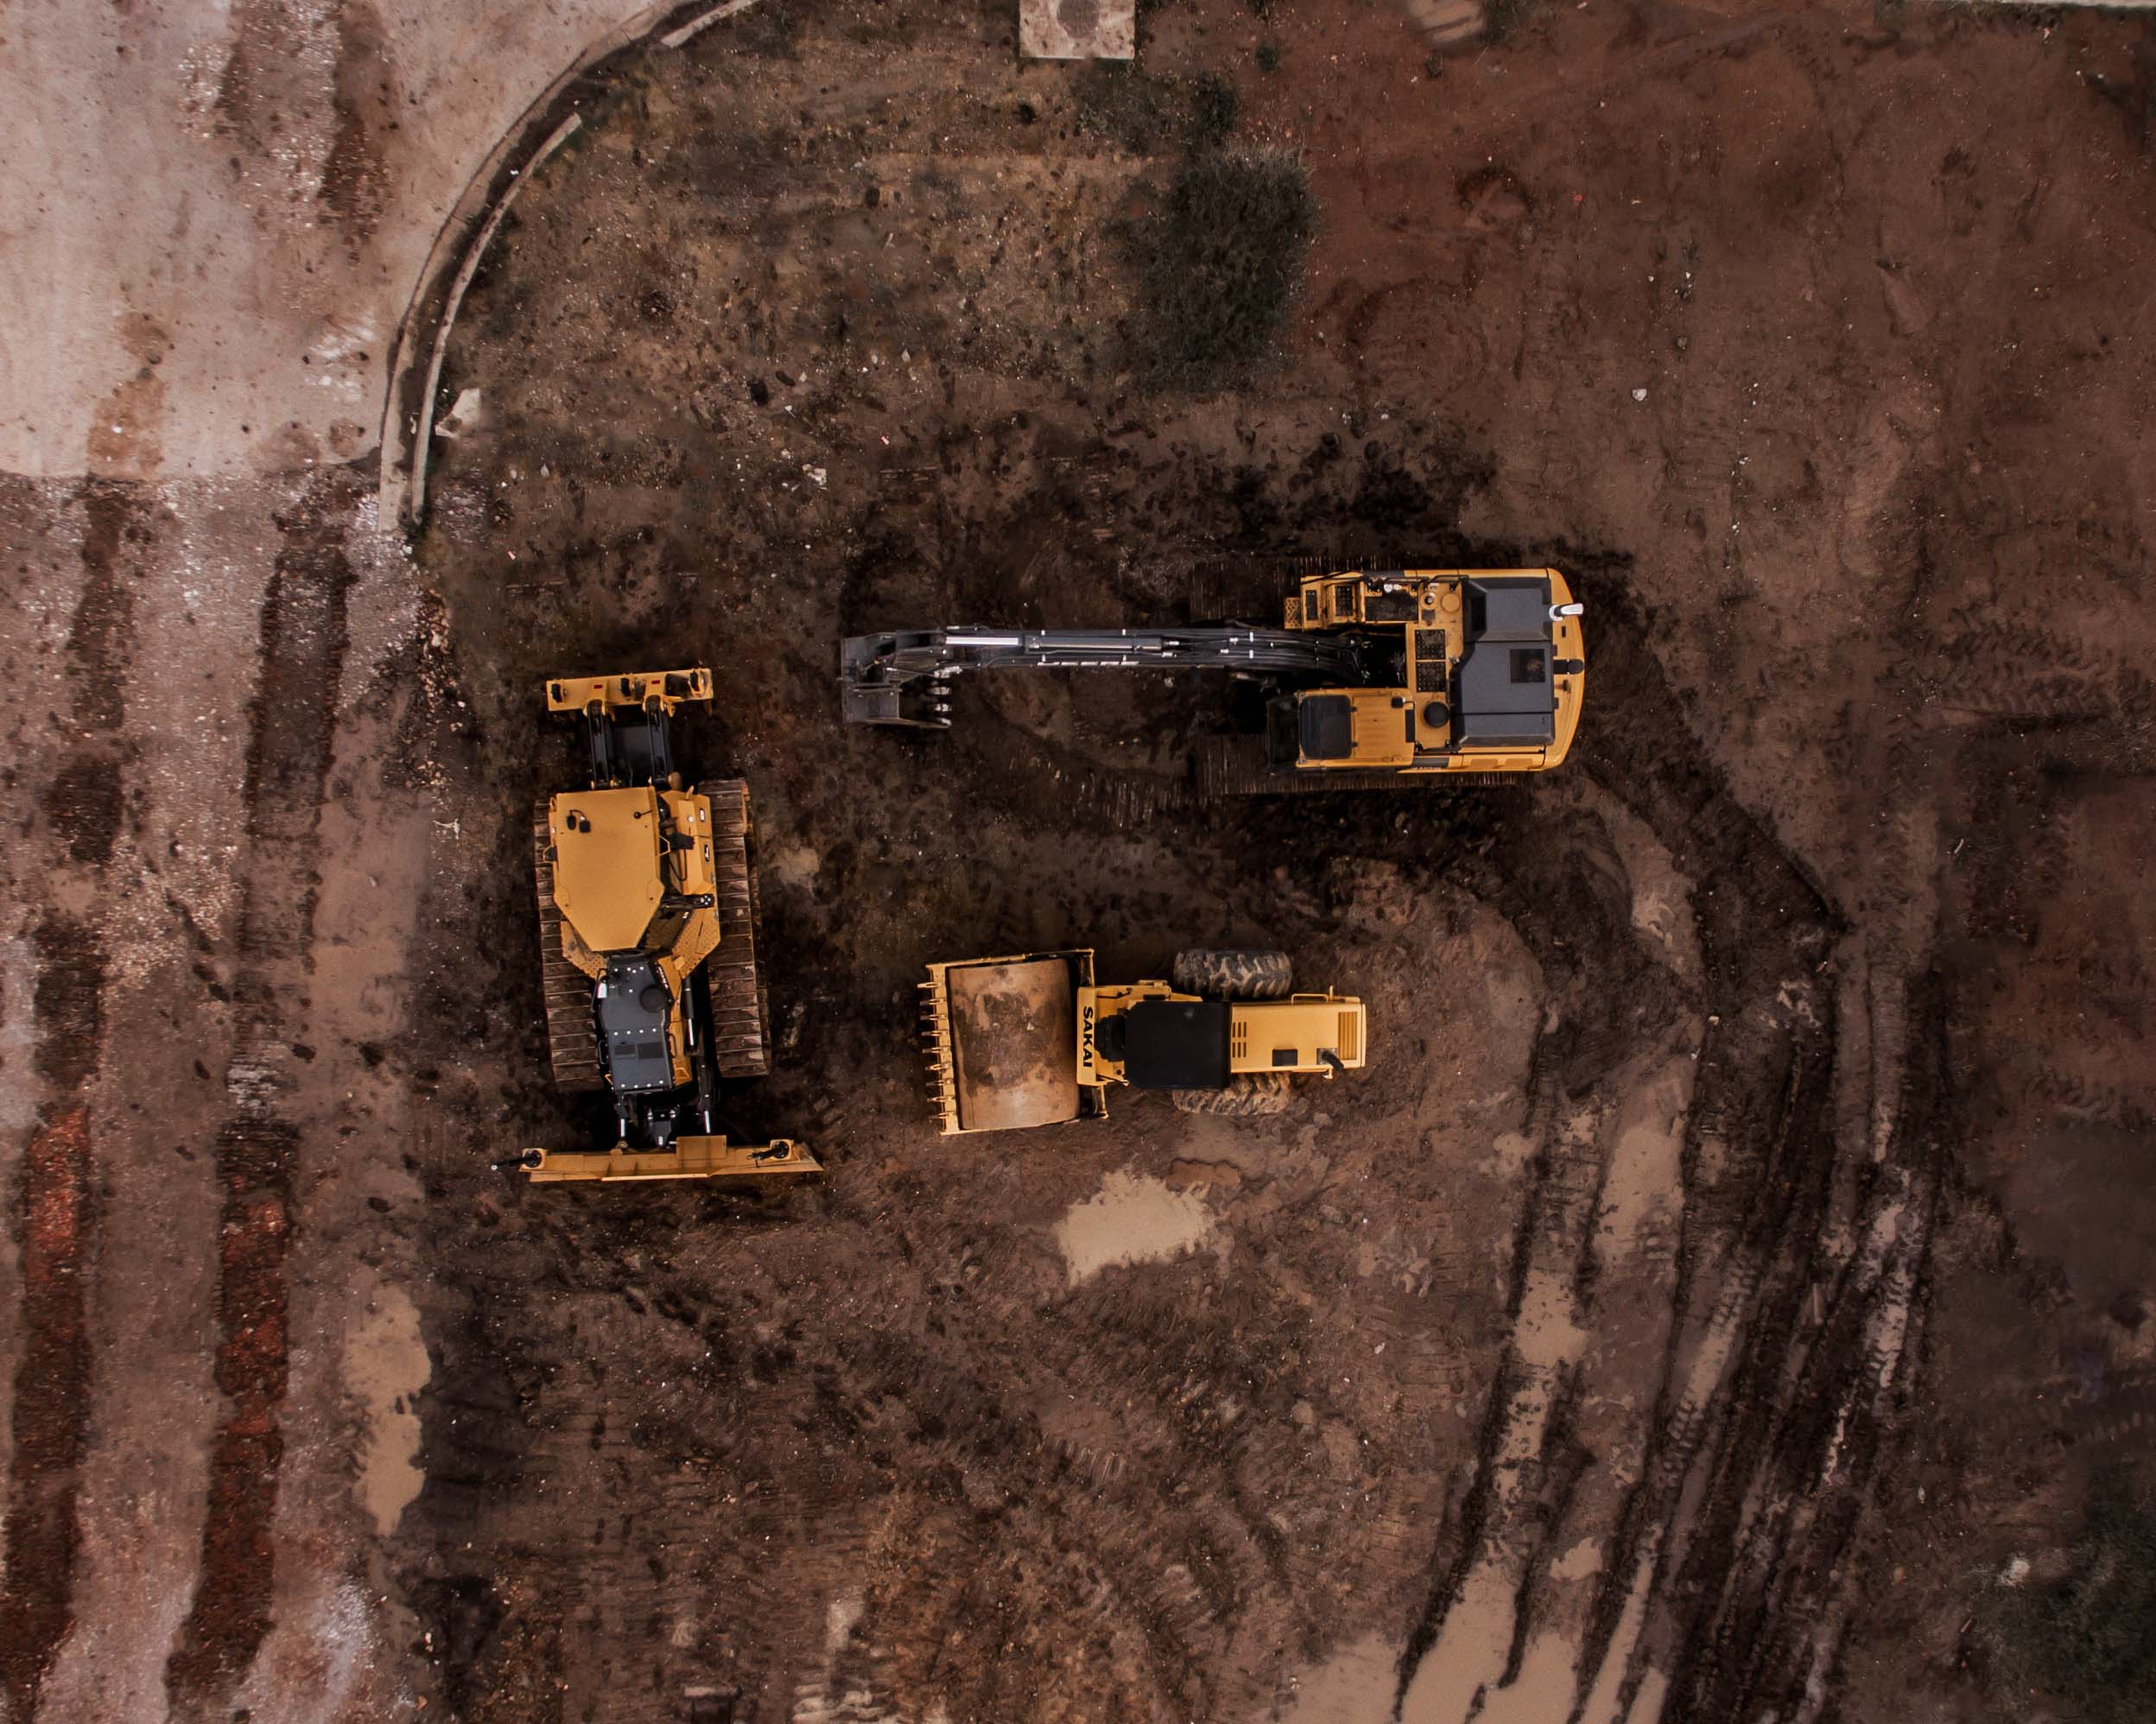 Plan view of various large extraction/mining vehicles